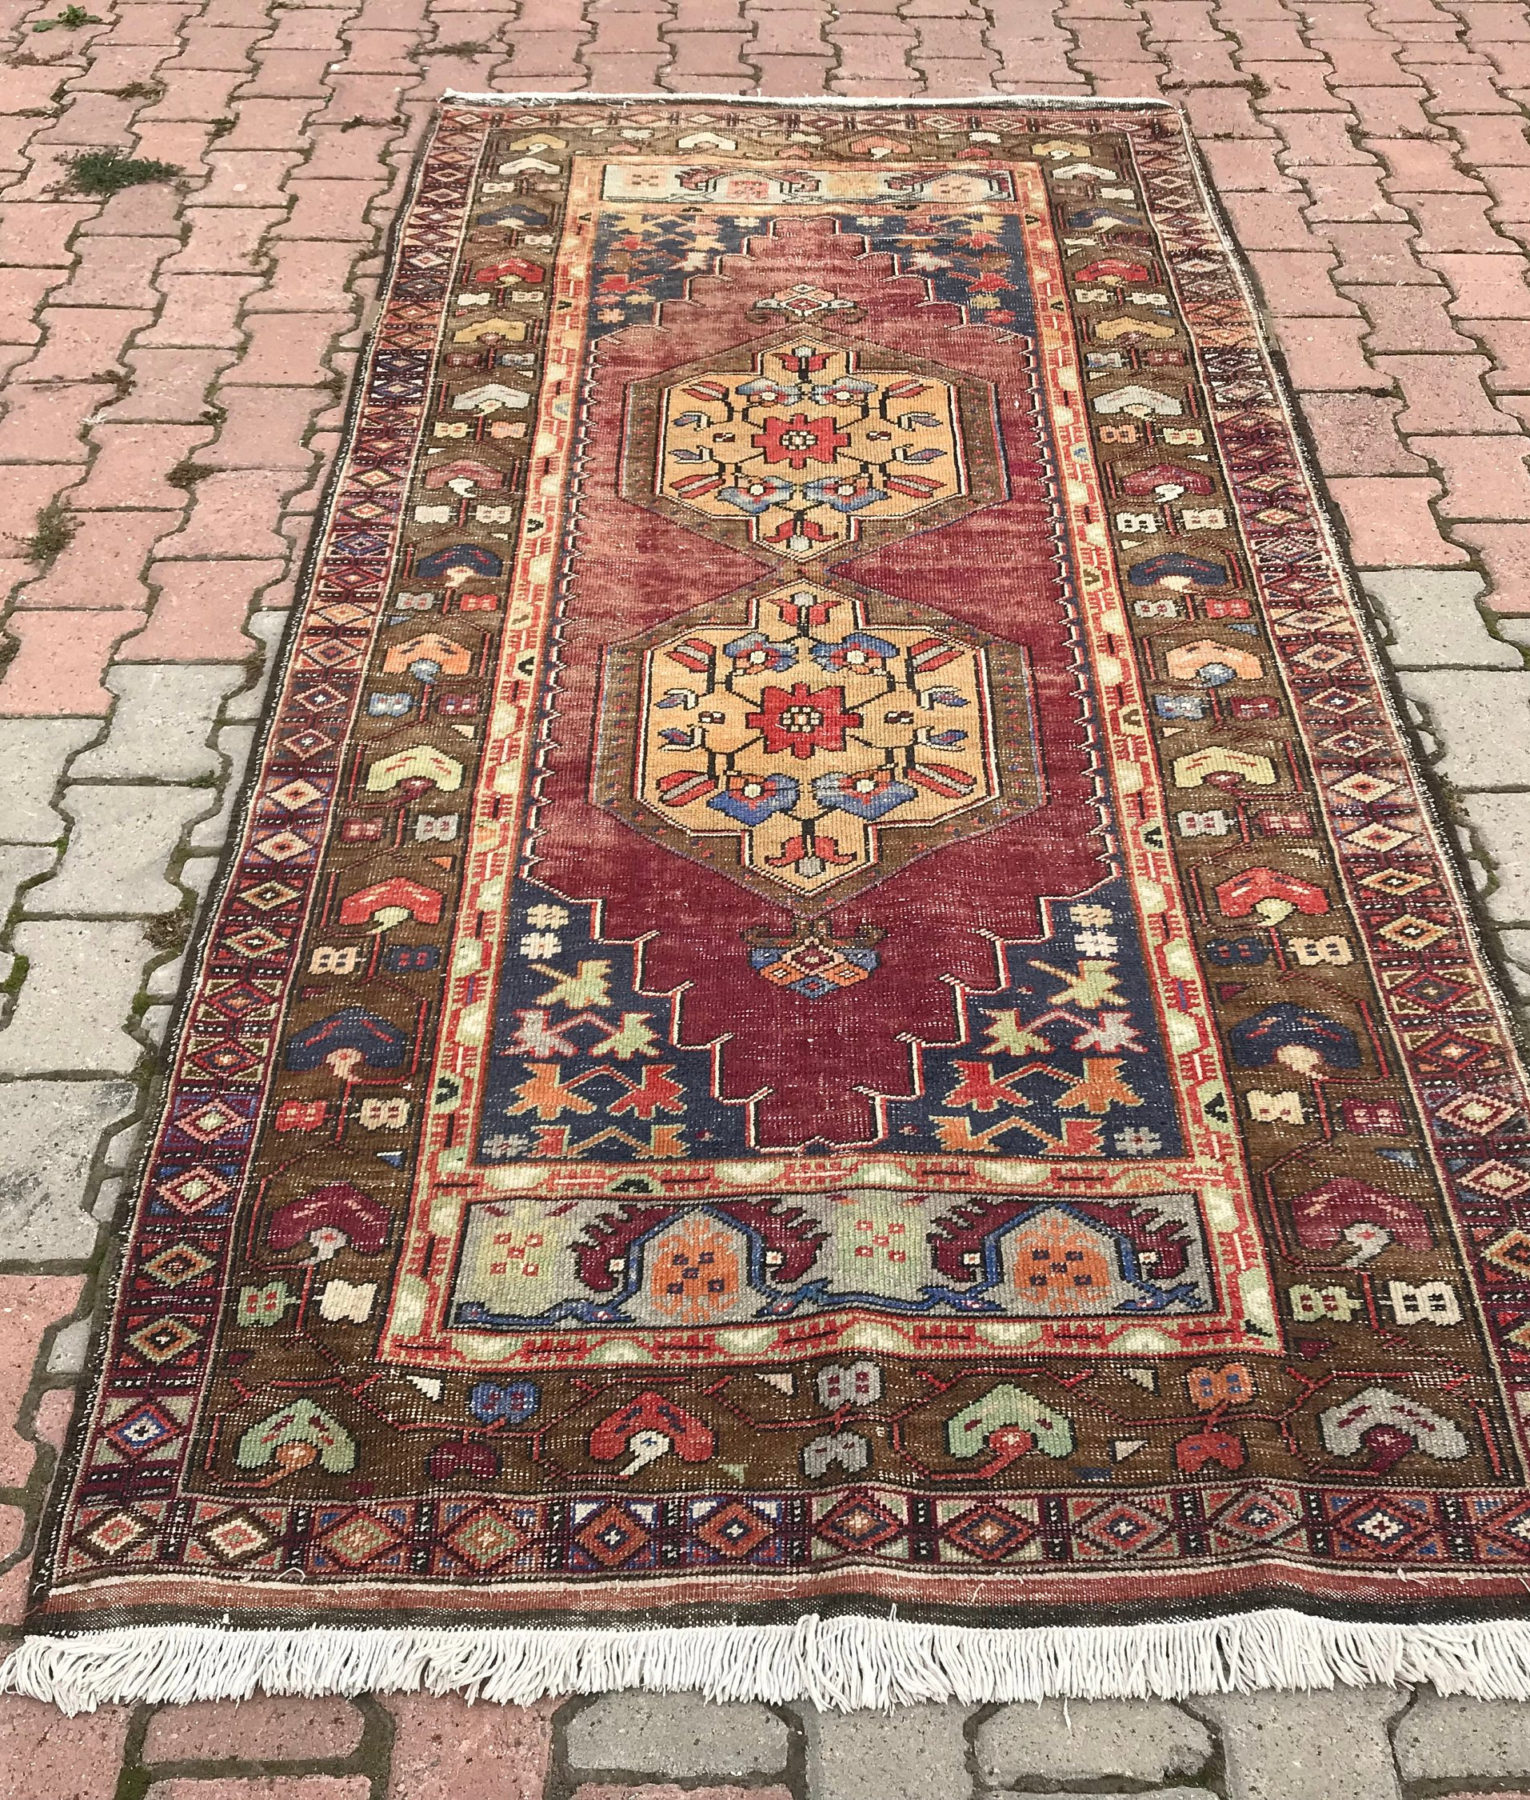 Vintage Turkish Handwoven 4.2x8.7 Ft Oushak Rug Wool Low Pile Oushak Rug  Handknotted Anatolian Runner Rug Decorative Kitchen Rug Faded